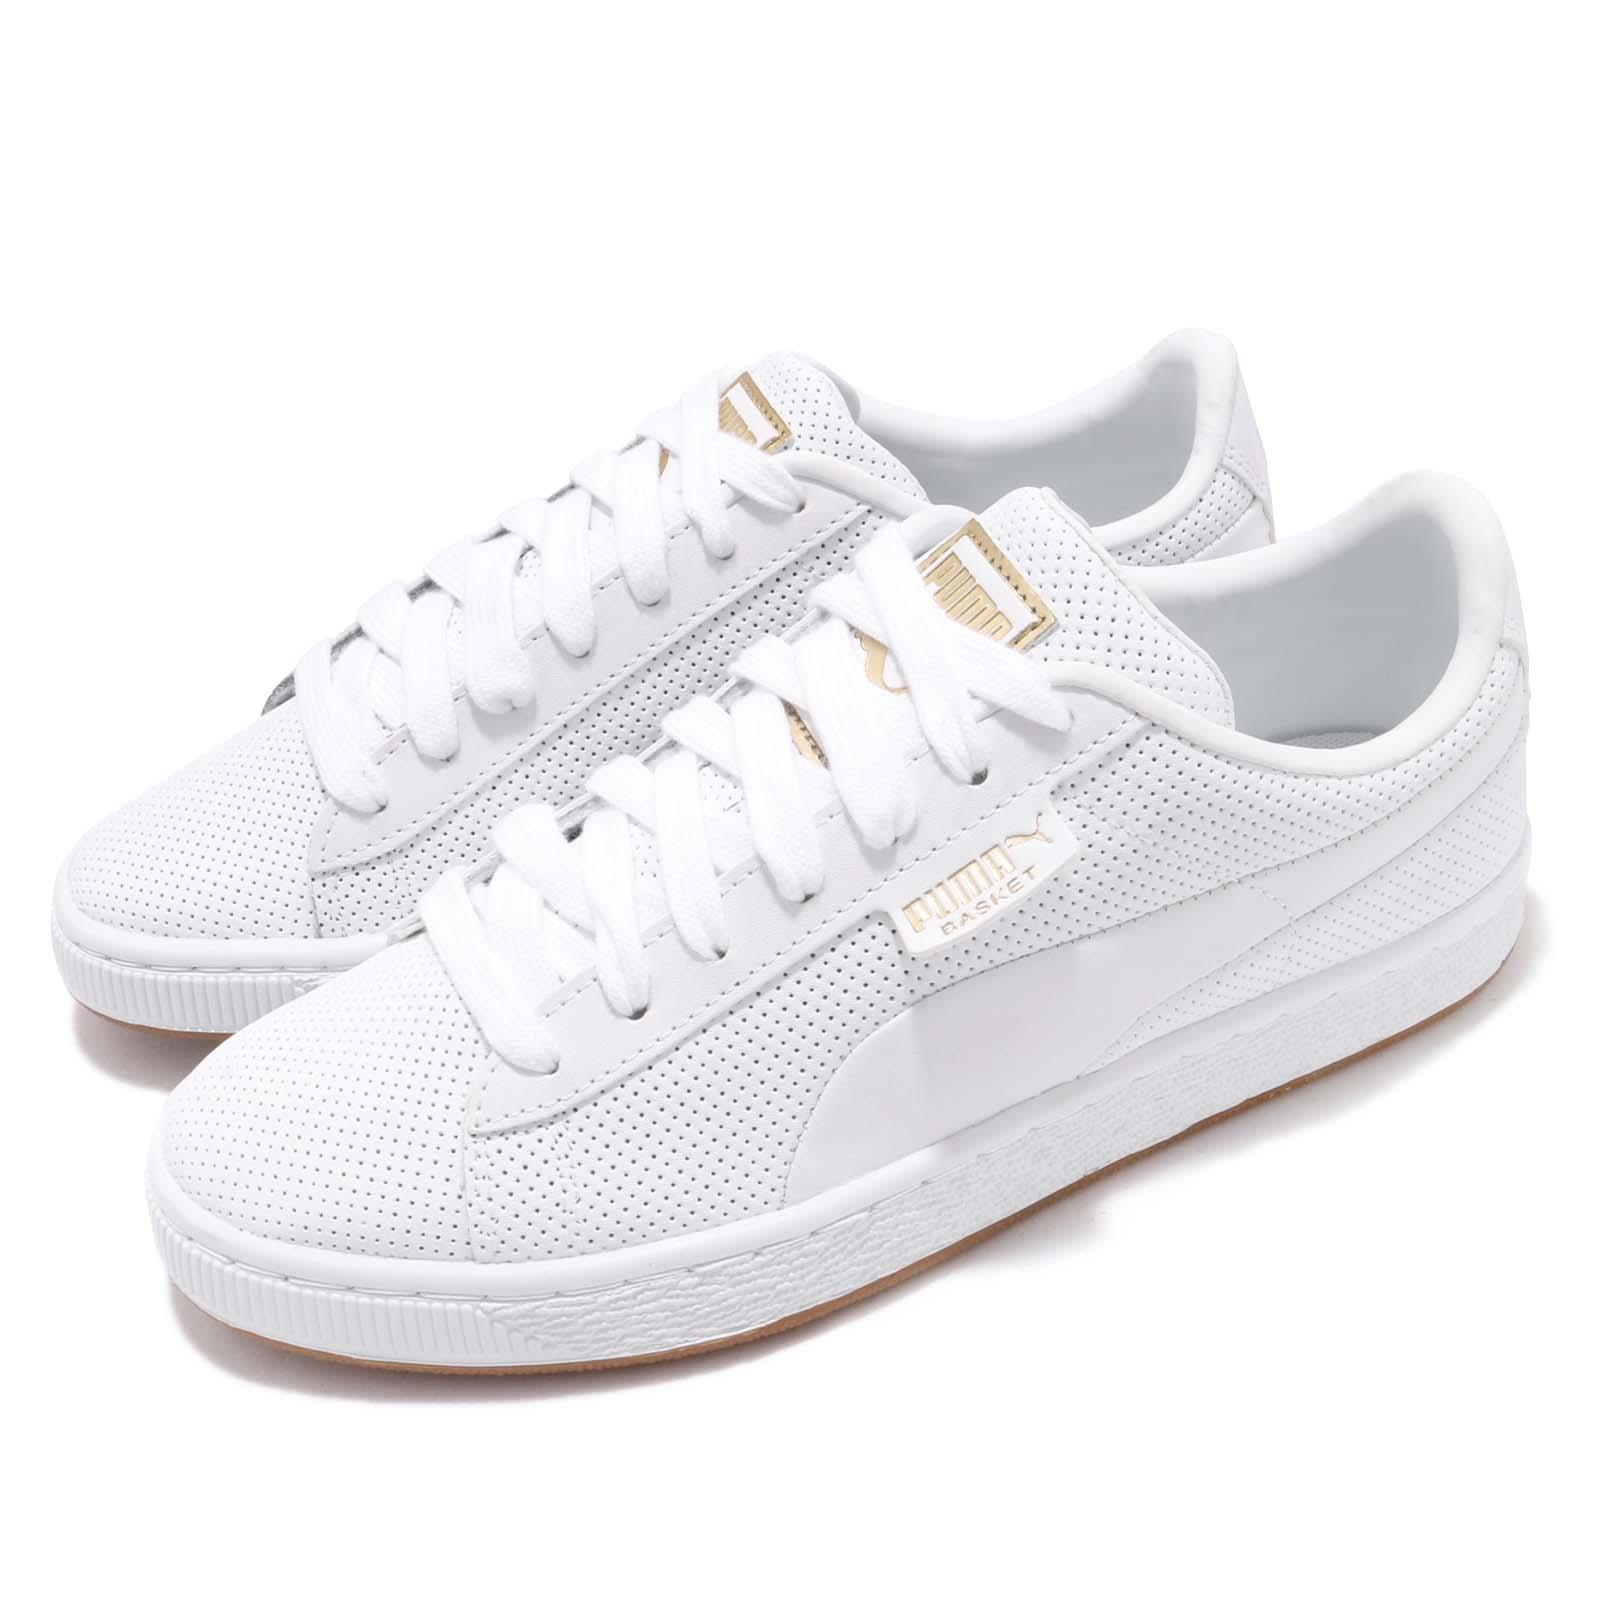 size 40 4f9fa 7af3a Details about Puma Basket Classic Gum JR White Gold Kid Junior Casual Shoes  Sneakers 368962-02